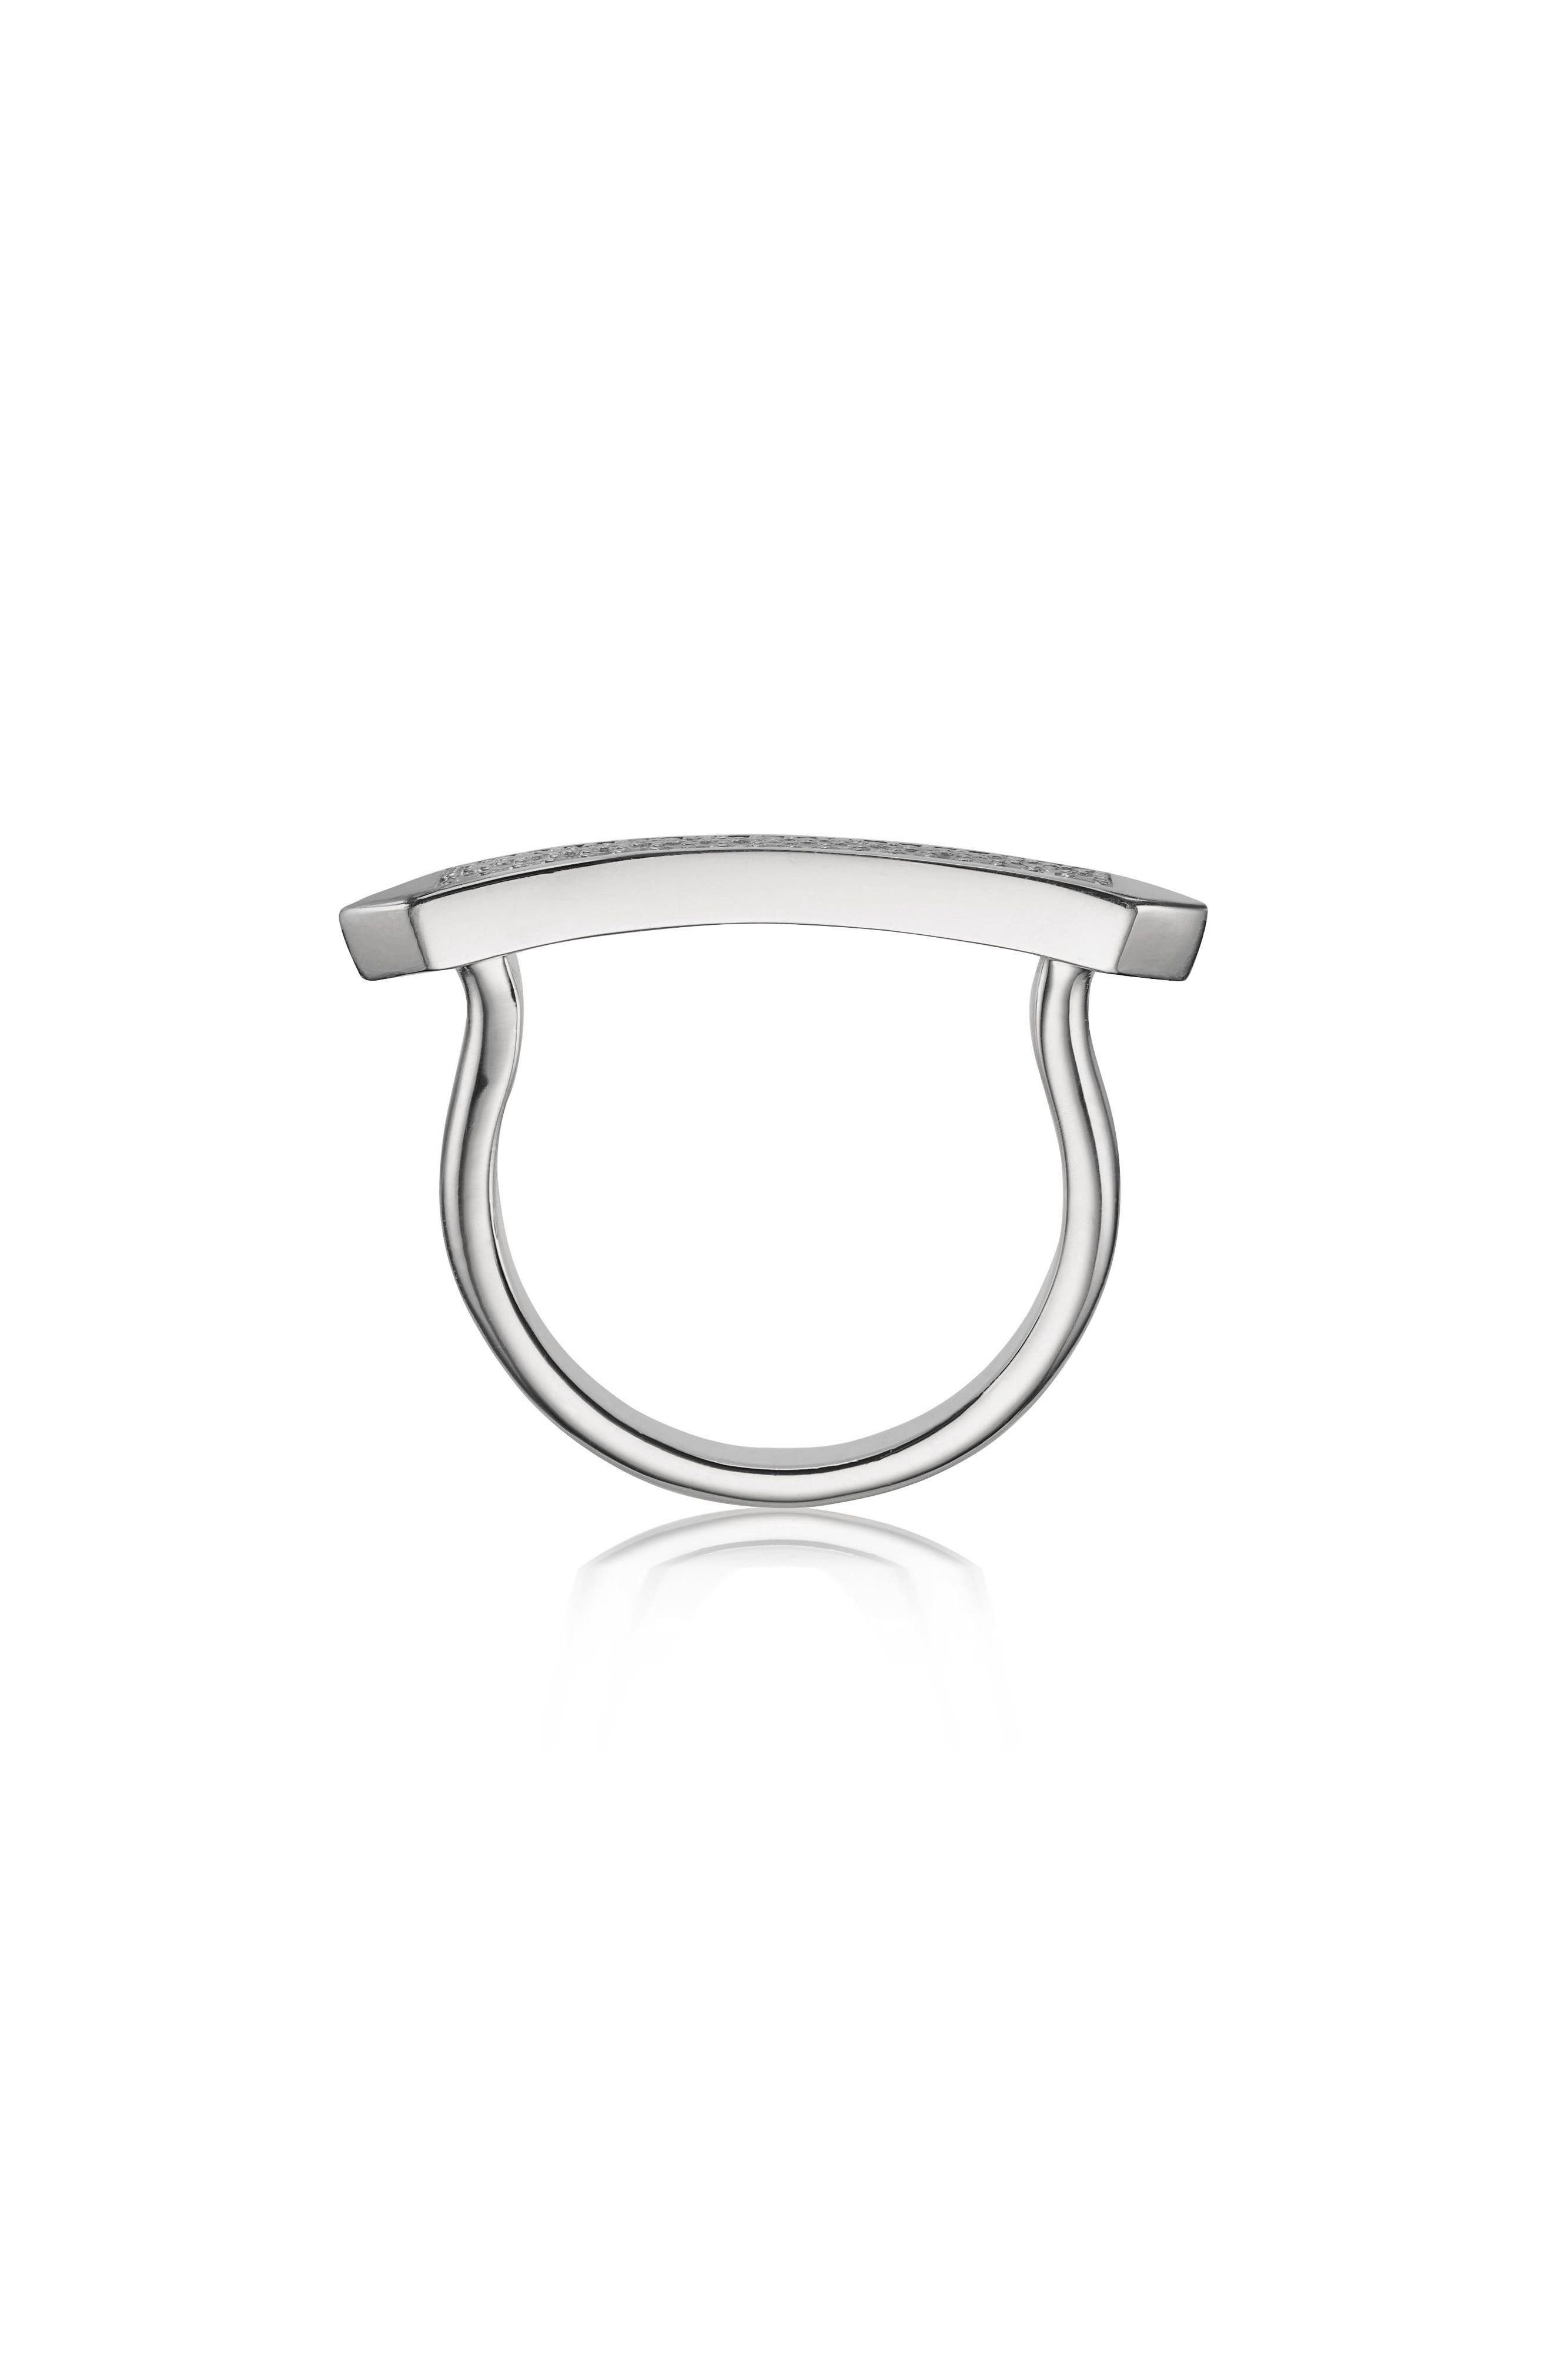 Baja Skinny Diamond Stacking Ring,                             Alternate thumbnail 2, color,                             SILVER